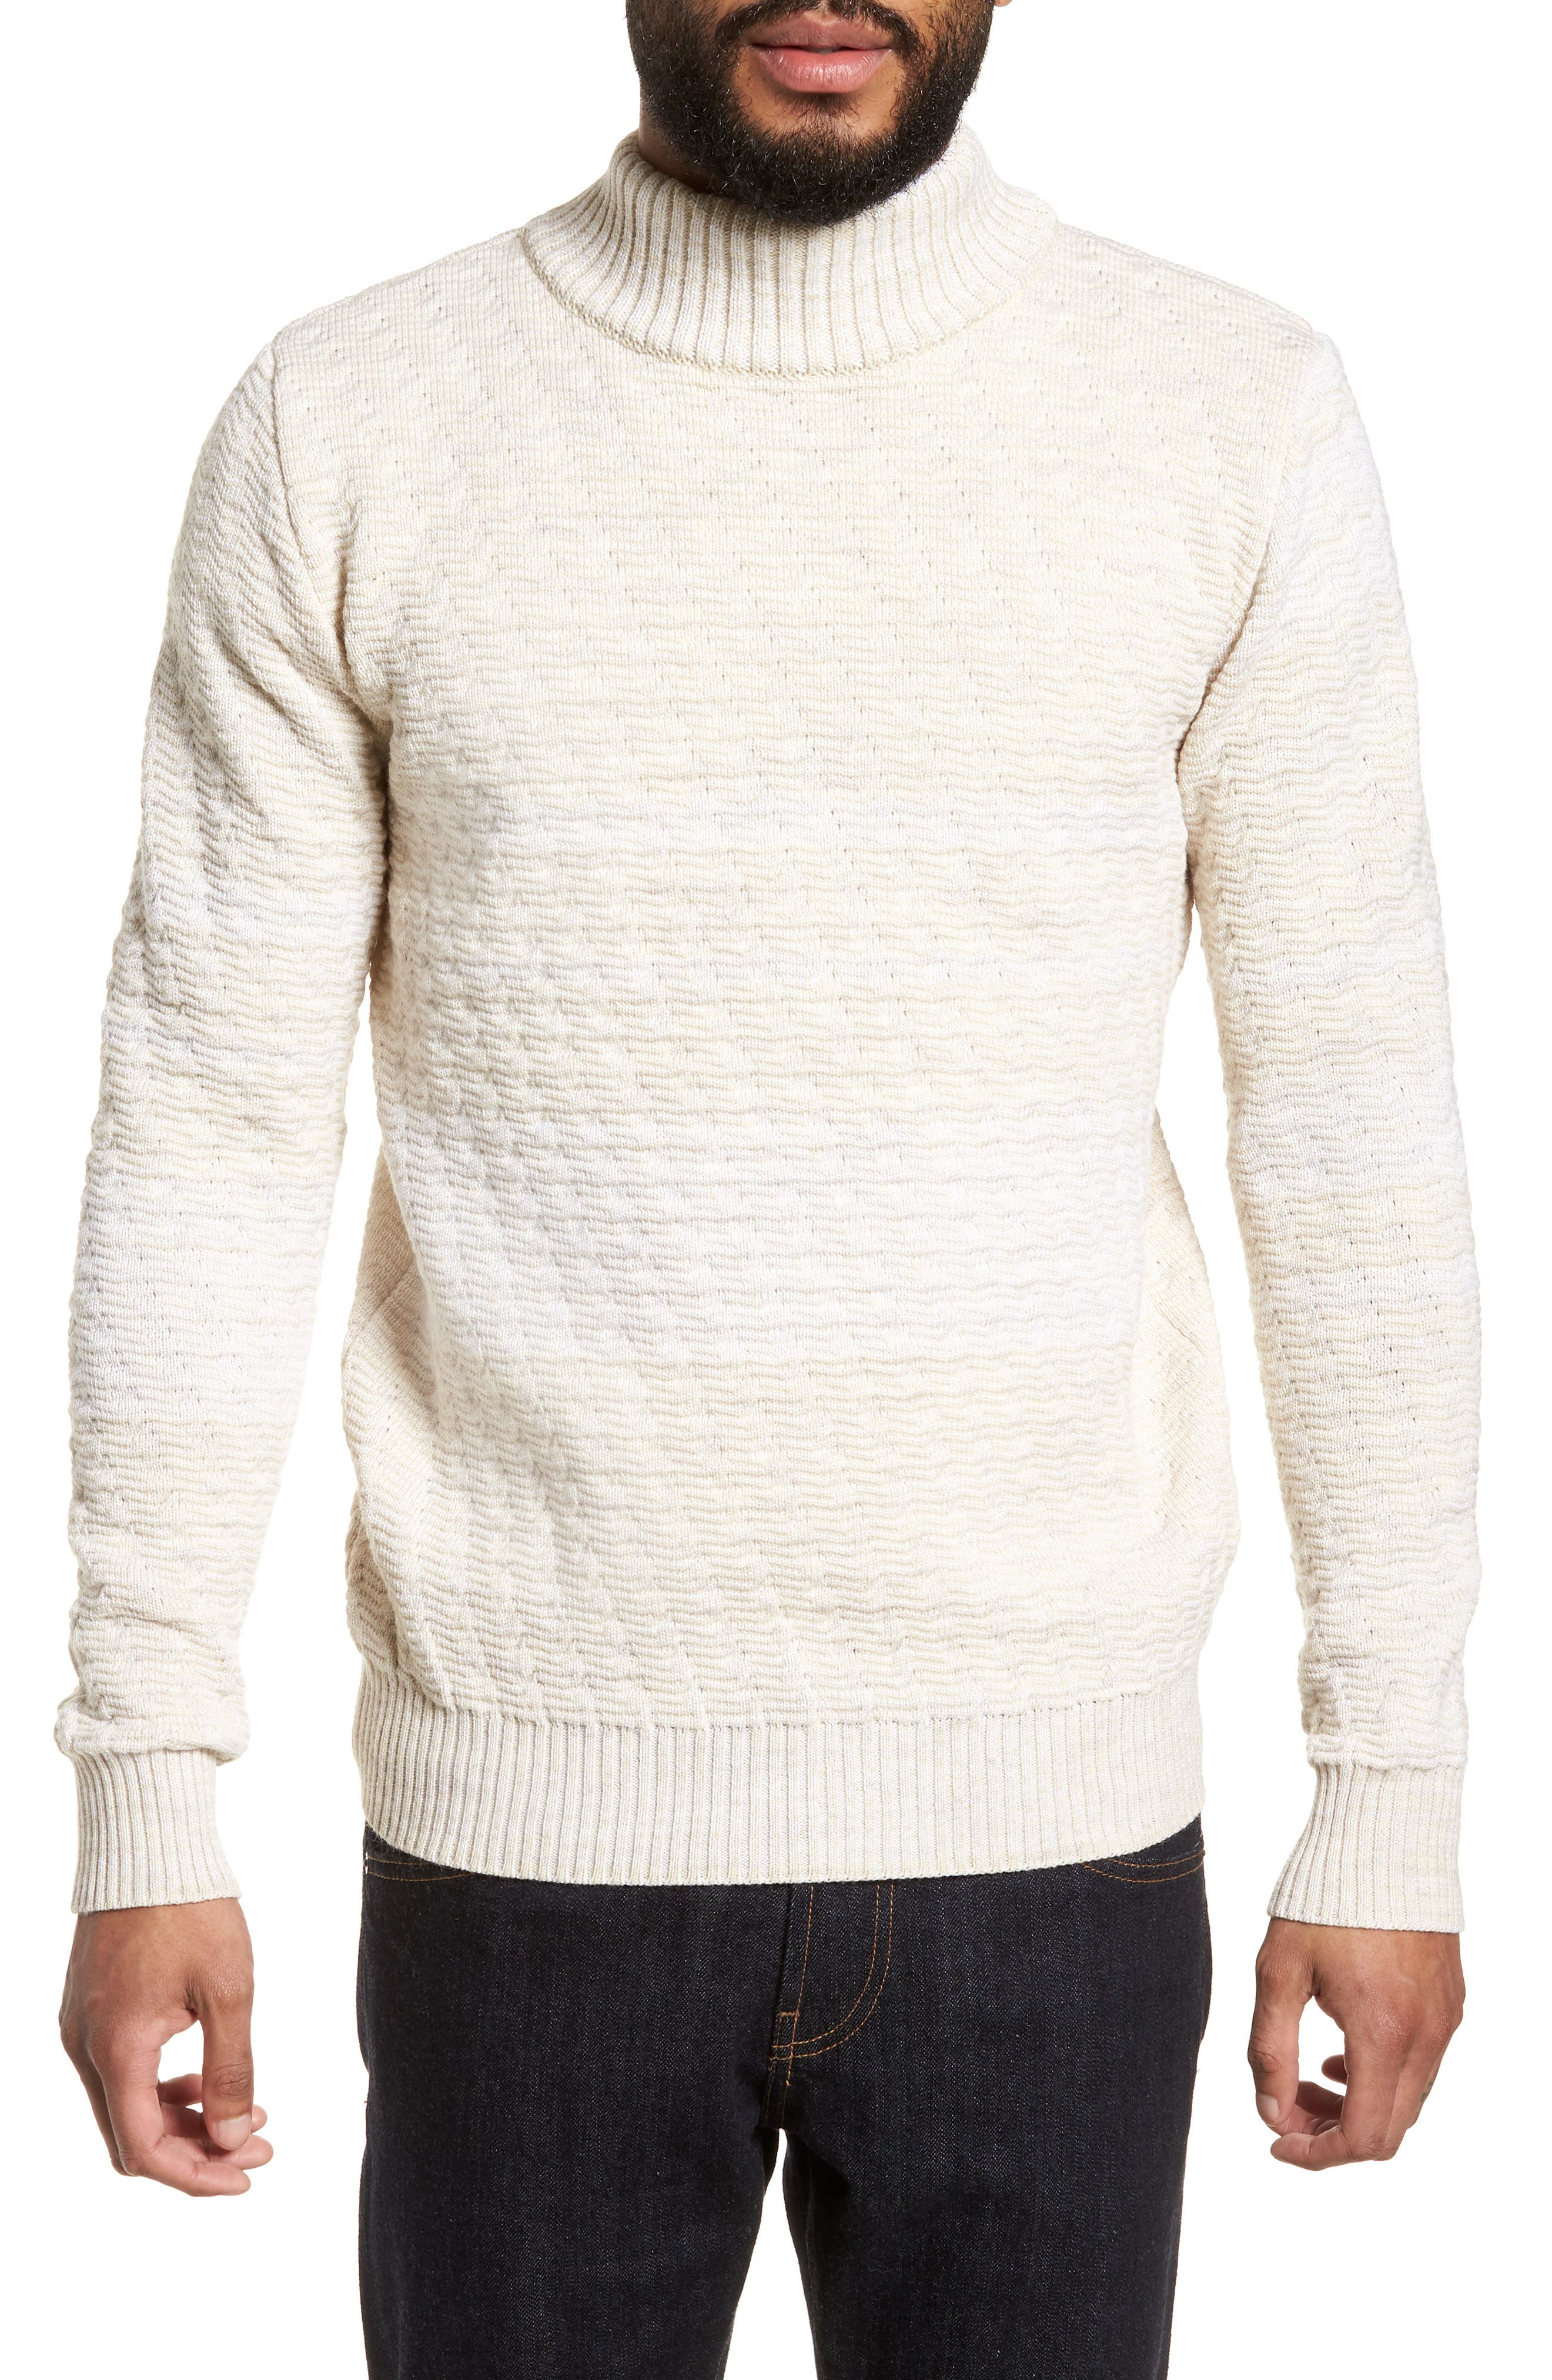 Evident Wool Turtleneck Sweater,                         Main,                         color, 250